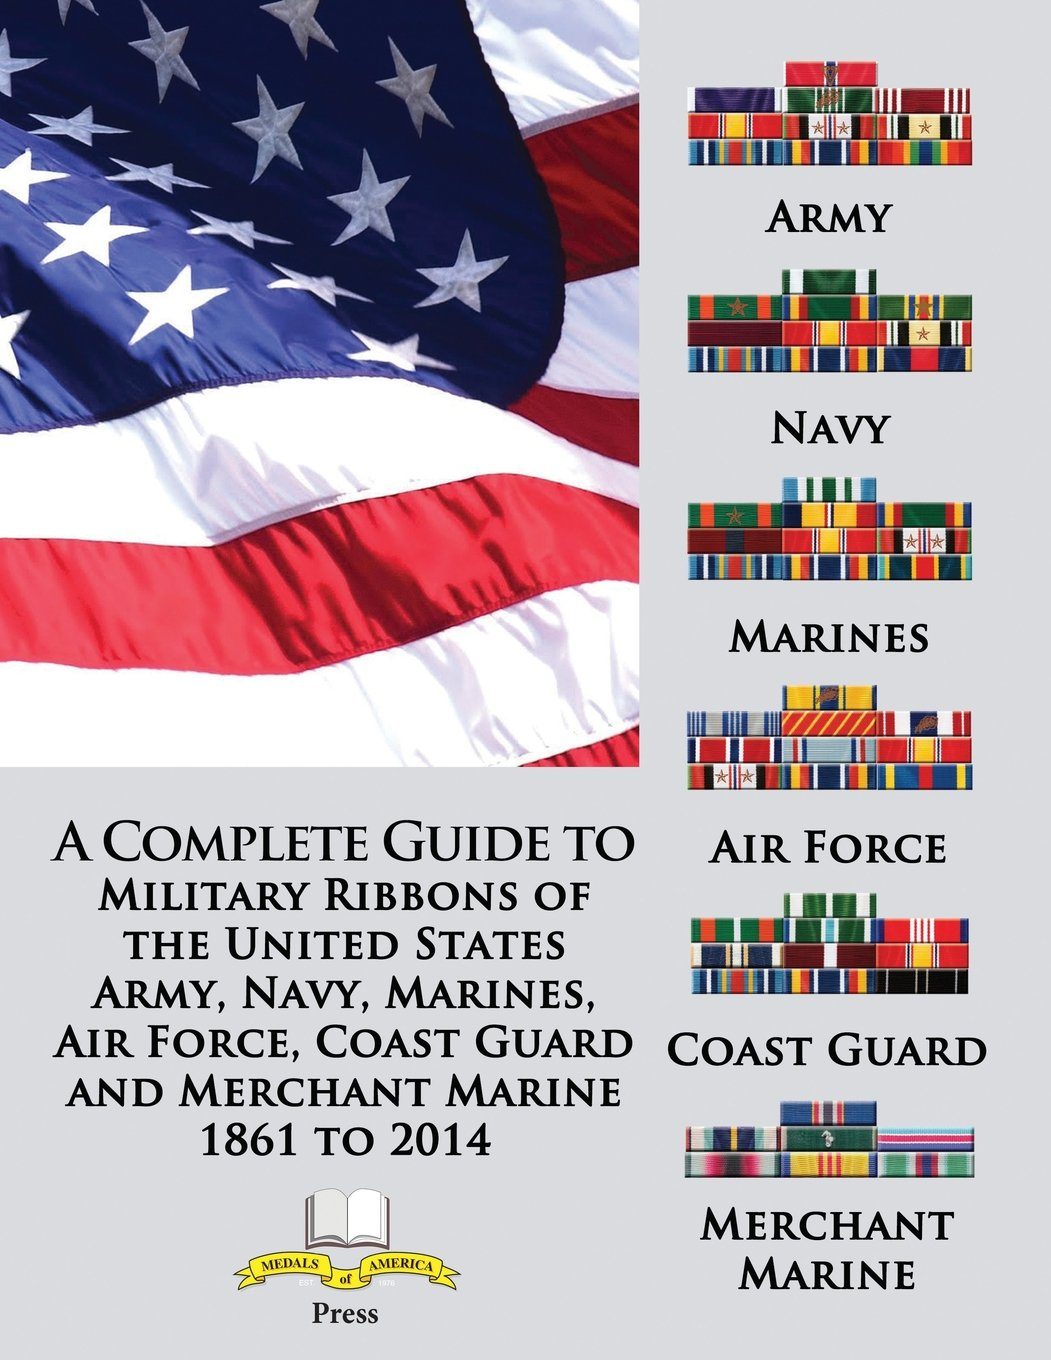 A Complete Guide to Military Ribbons of the United States